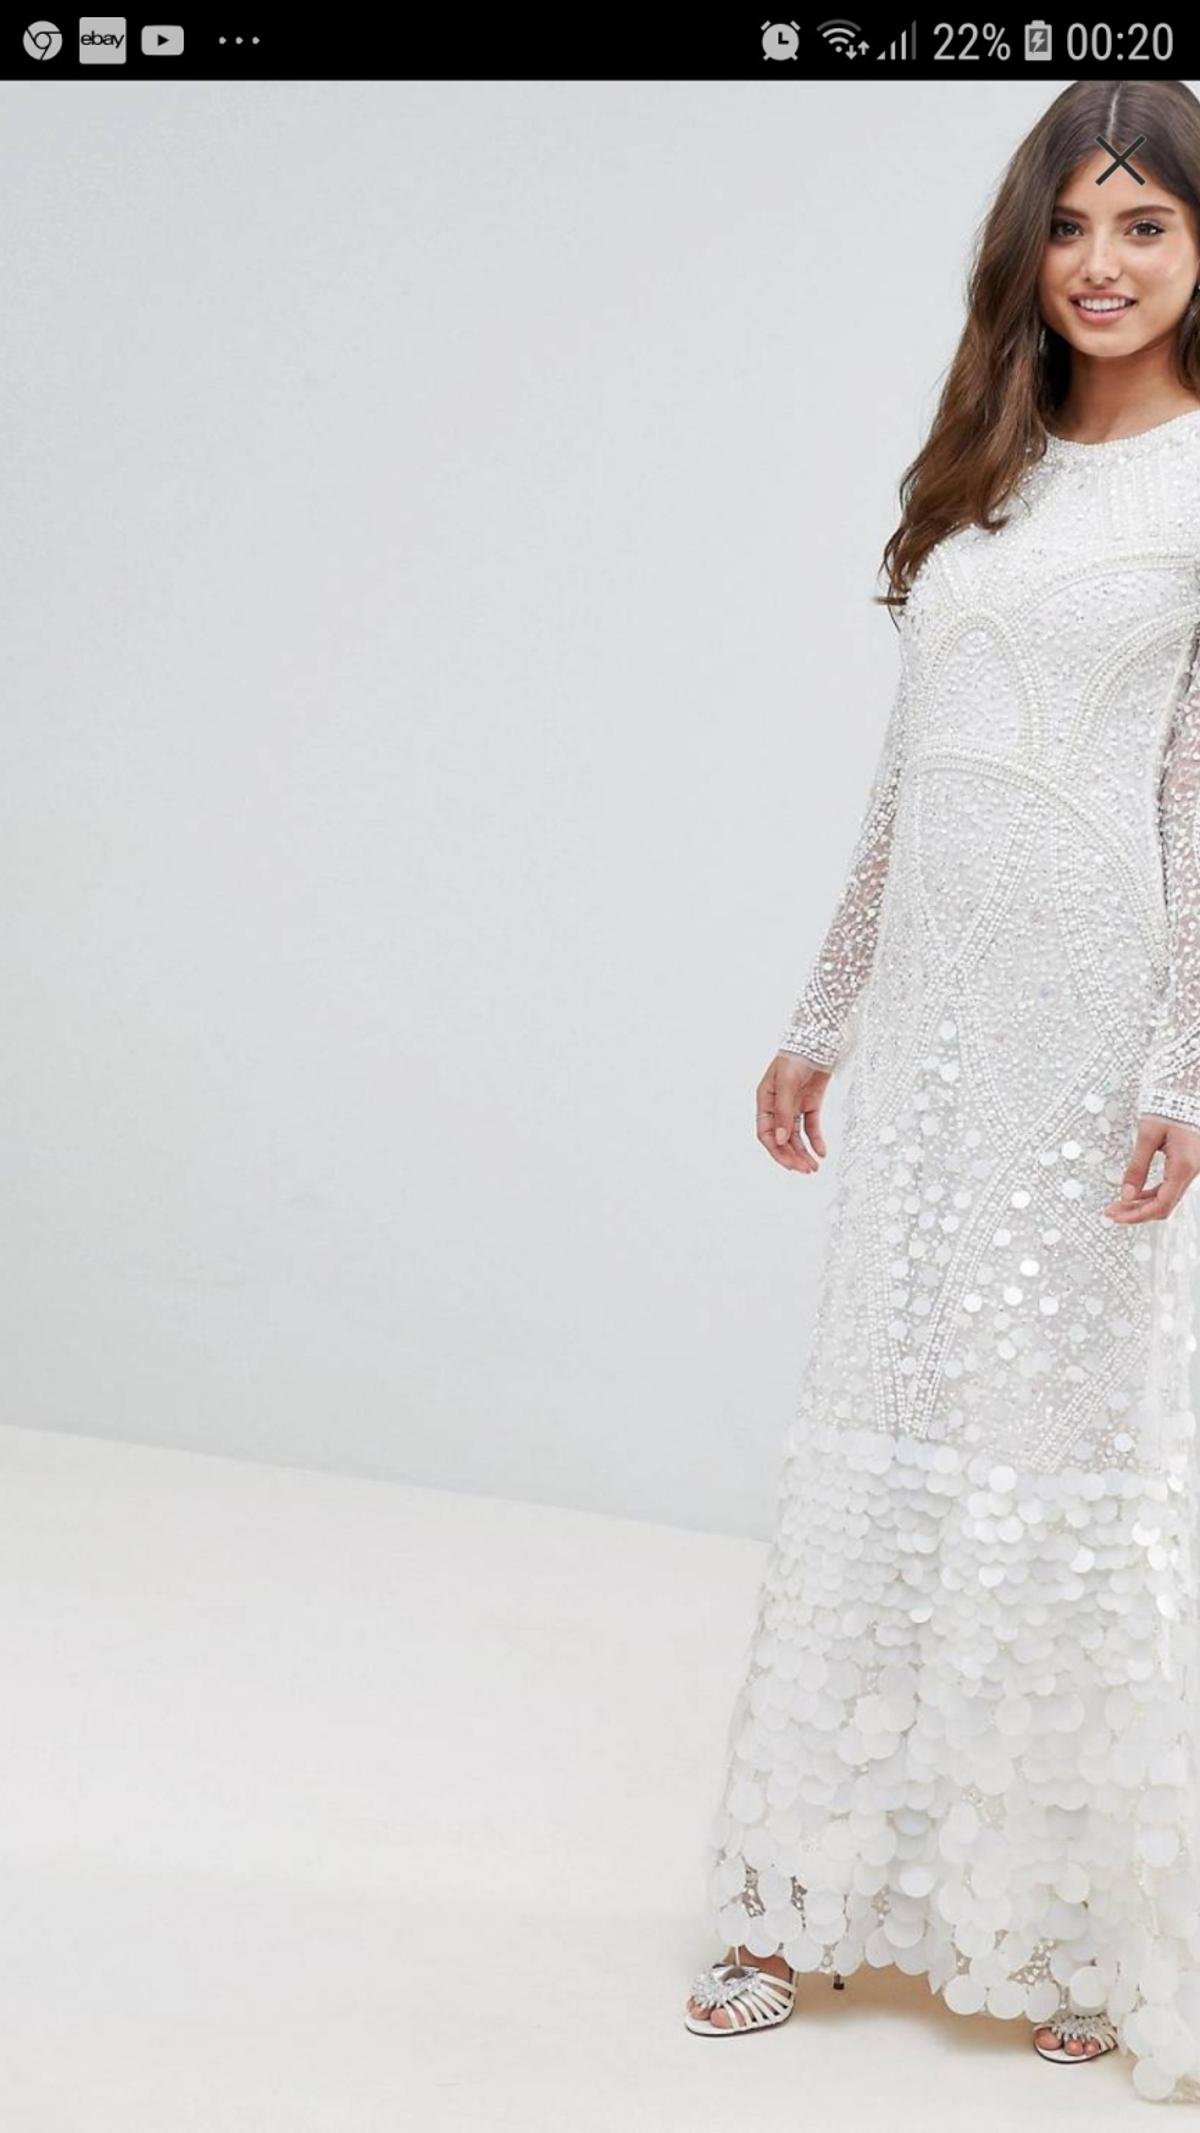 Asos verziertes kleid A Star is born in 16 Oberhausen for